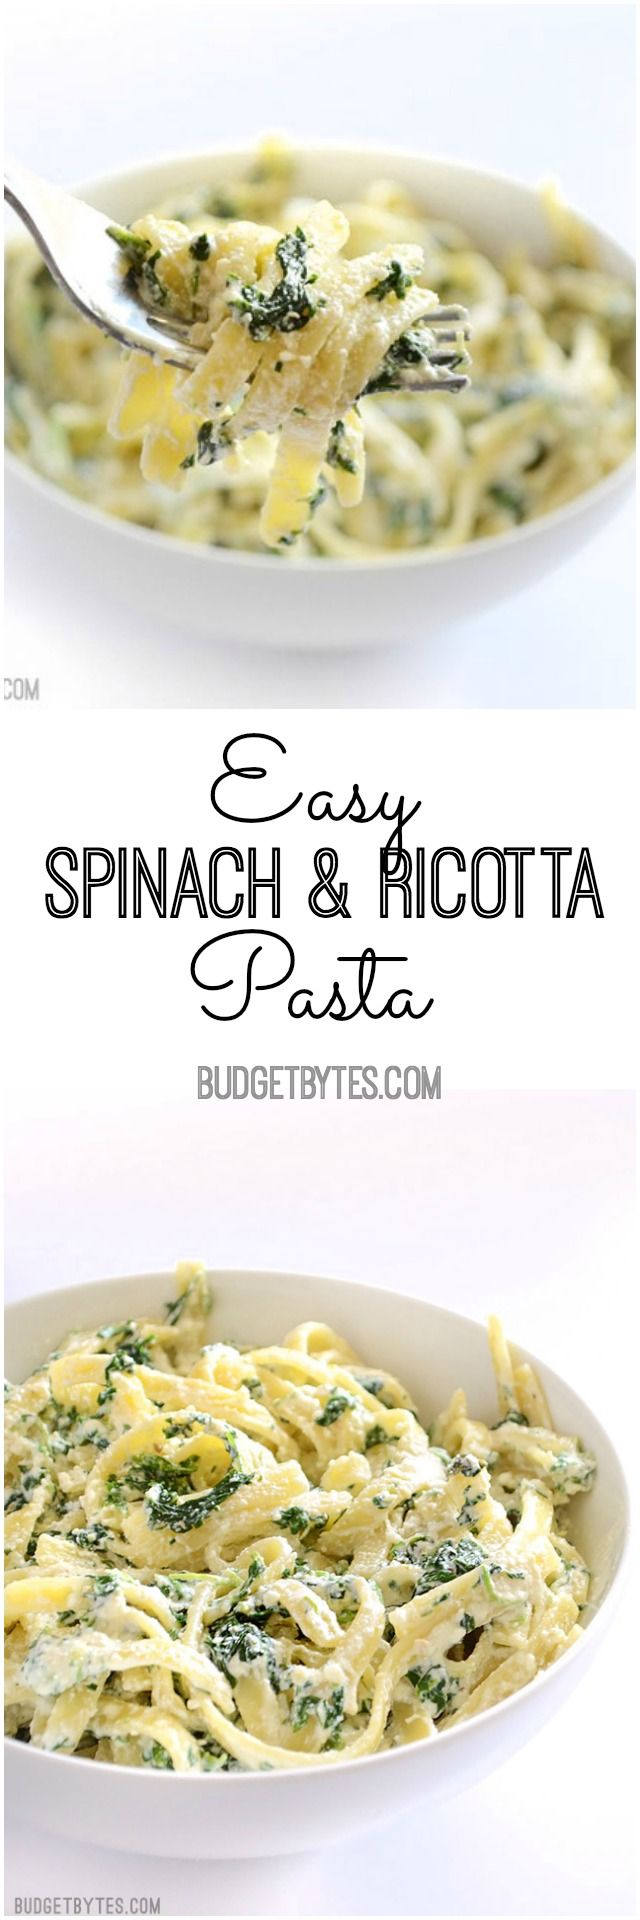 Easy Spinach Ricotta Pasta - An easy weeknight pasta that takes minutes to make. A simple, creamy, garlicky sauce spiked with spinach for color, flavor, and nutrients.